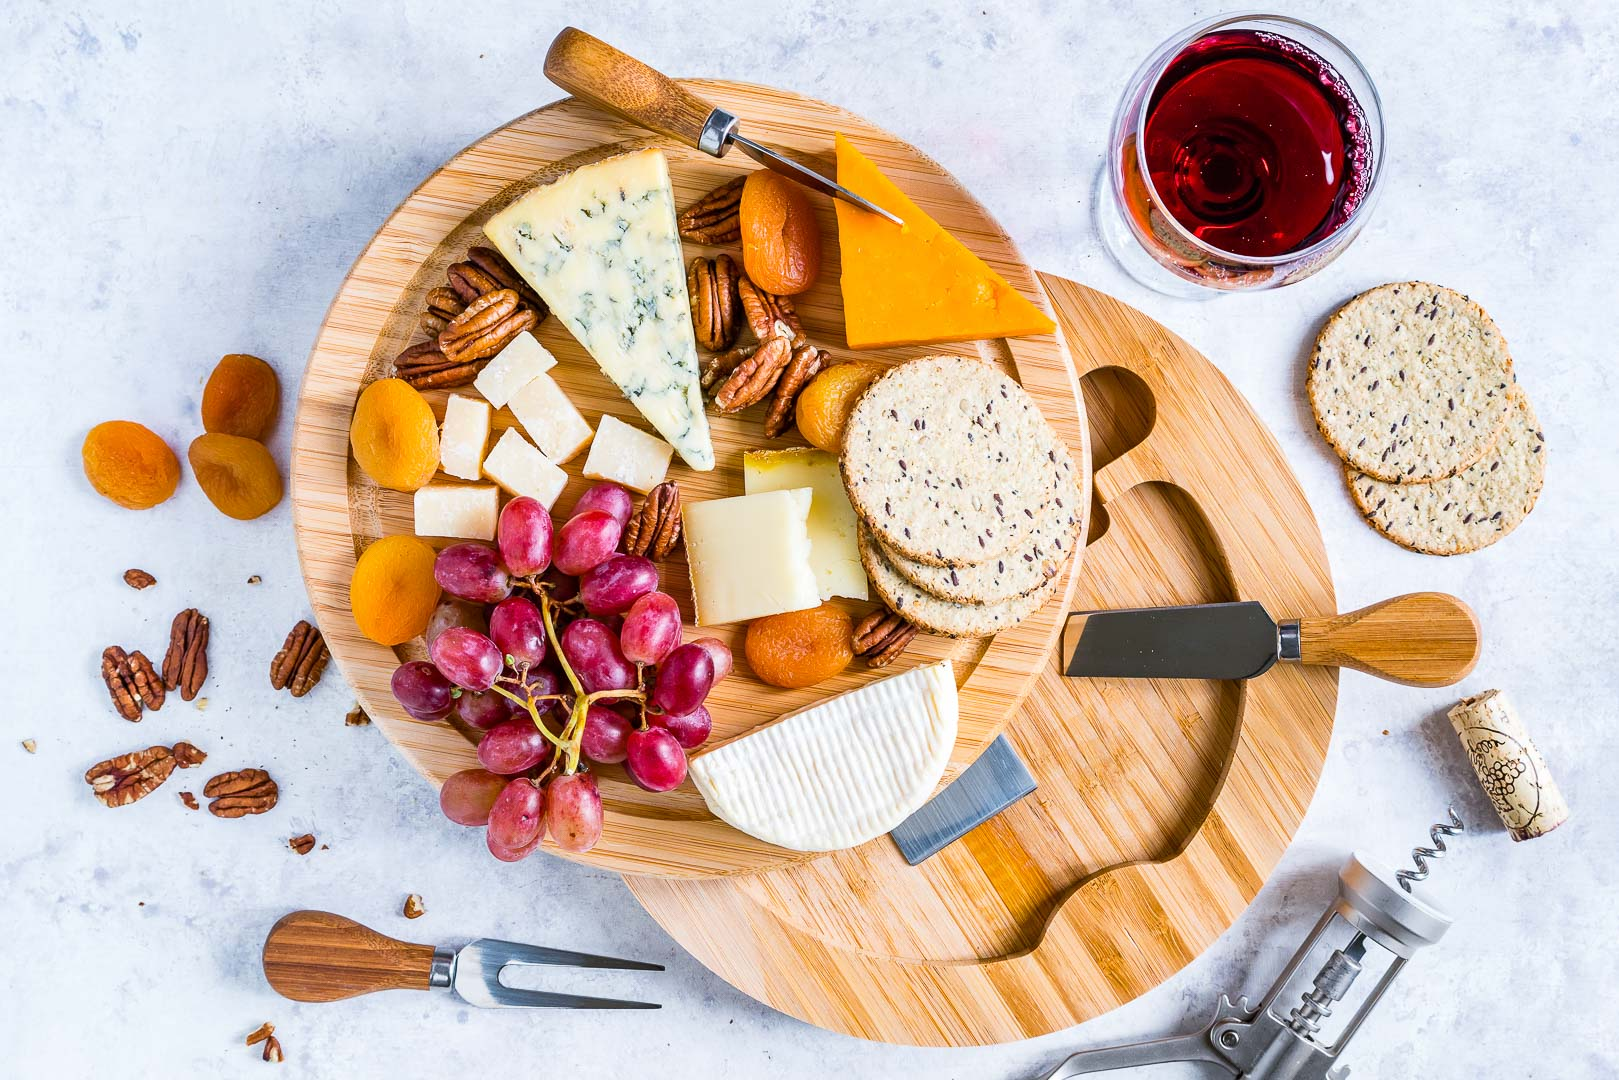 How To Make A Cheese Board 2